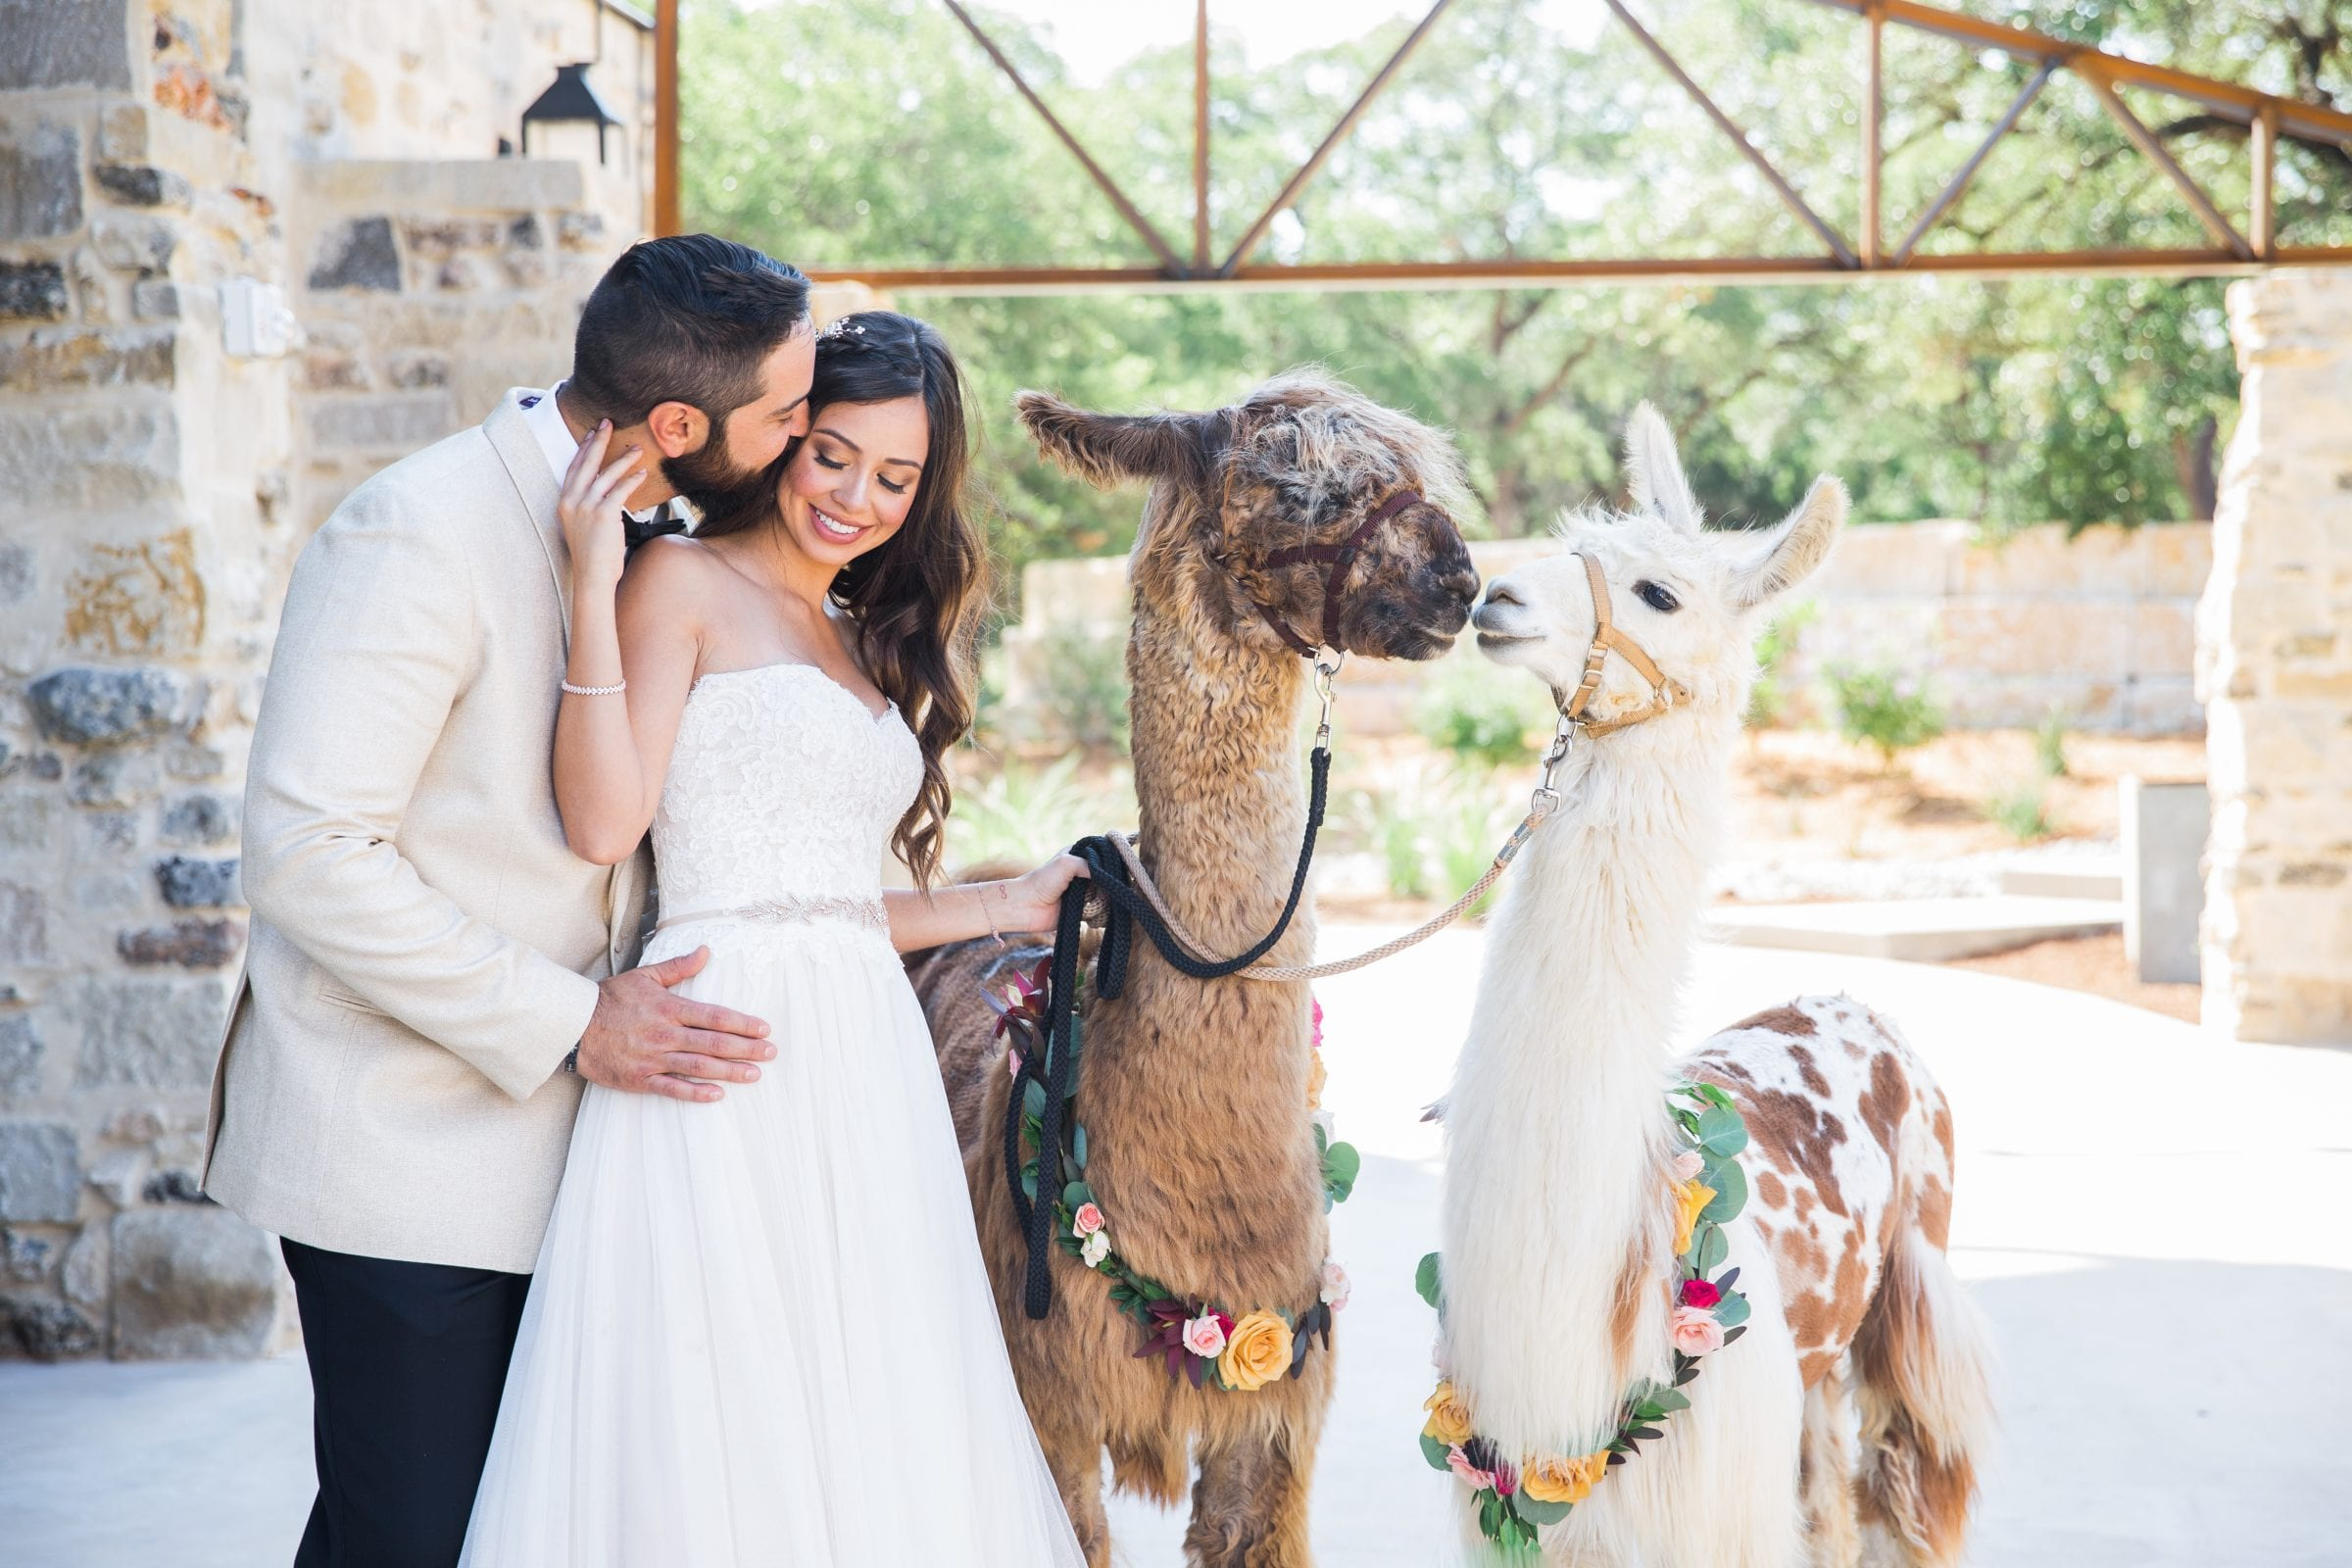 Llamas in love at park 31